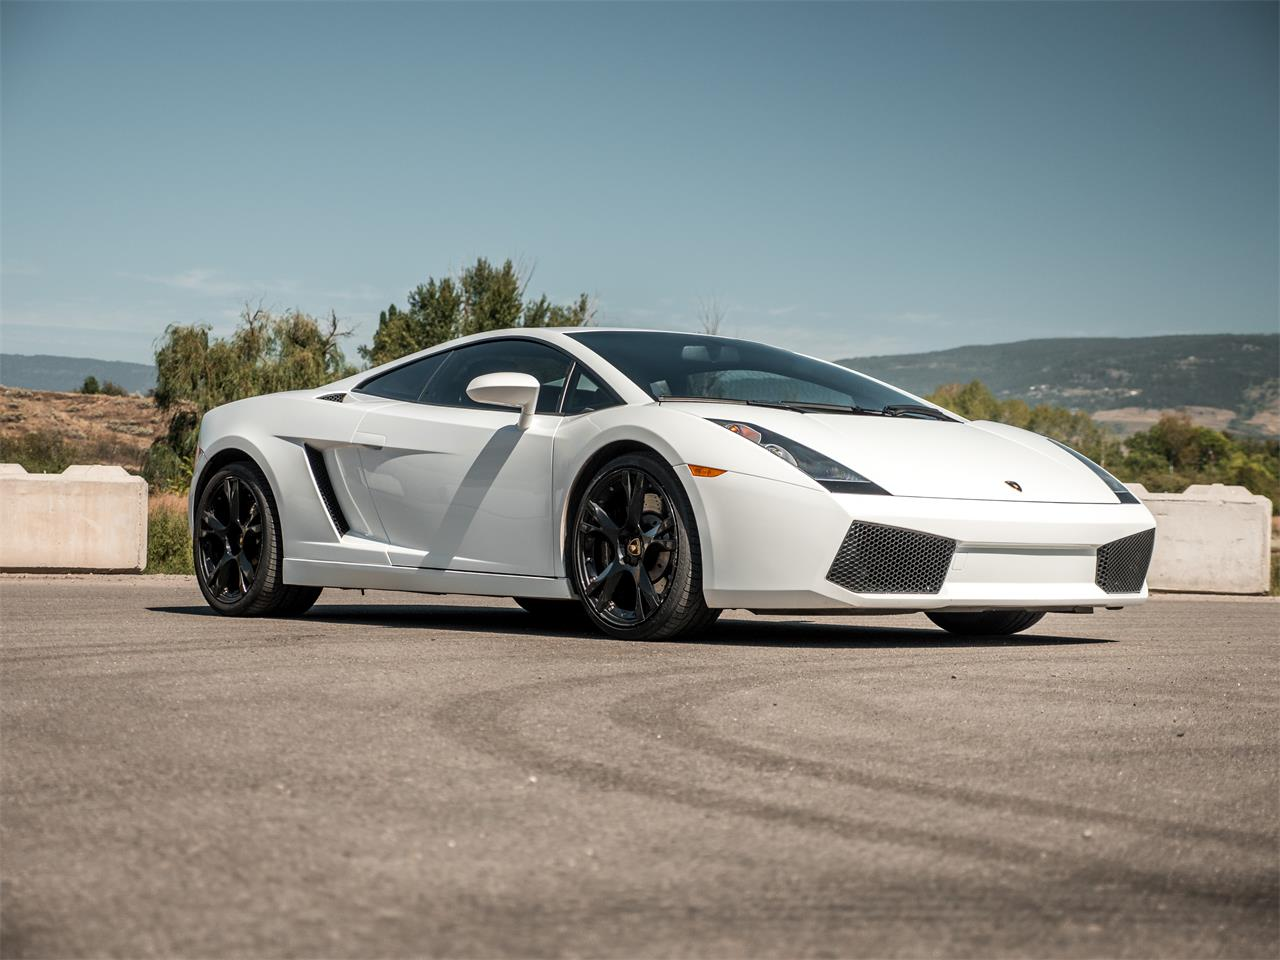 Large Picture of 2008 Gallardo located in British Columbia - $91,819.00 Offered by ABC Dealer TEST - QUI2